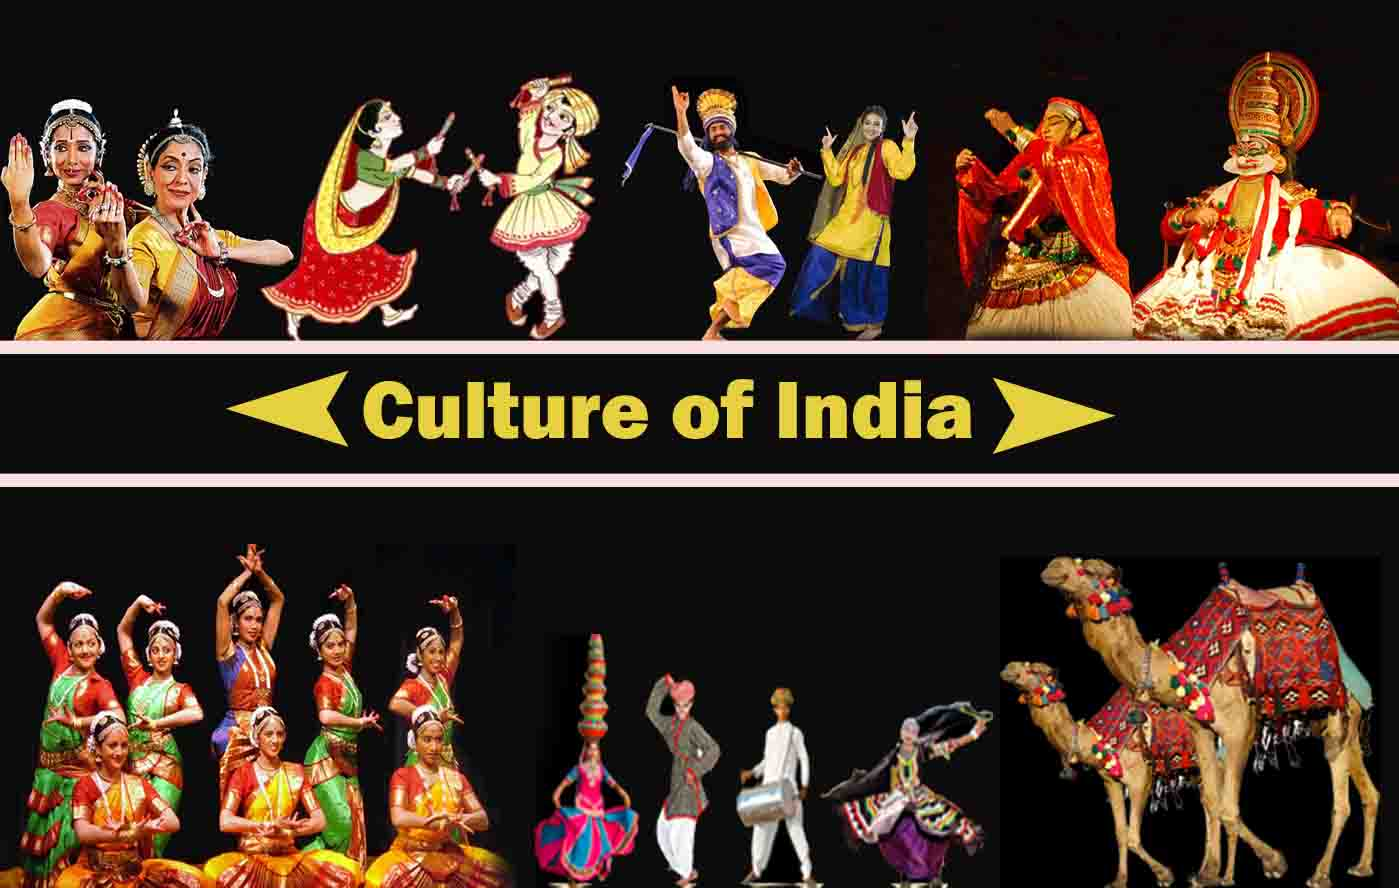 culture of india and western culture What does westernization mean for pakistan what are the effects of modernization on pakistani culture this article discusses the positives and negatives of western influence in pakistan.